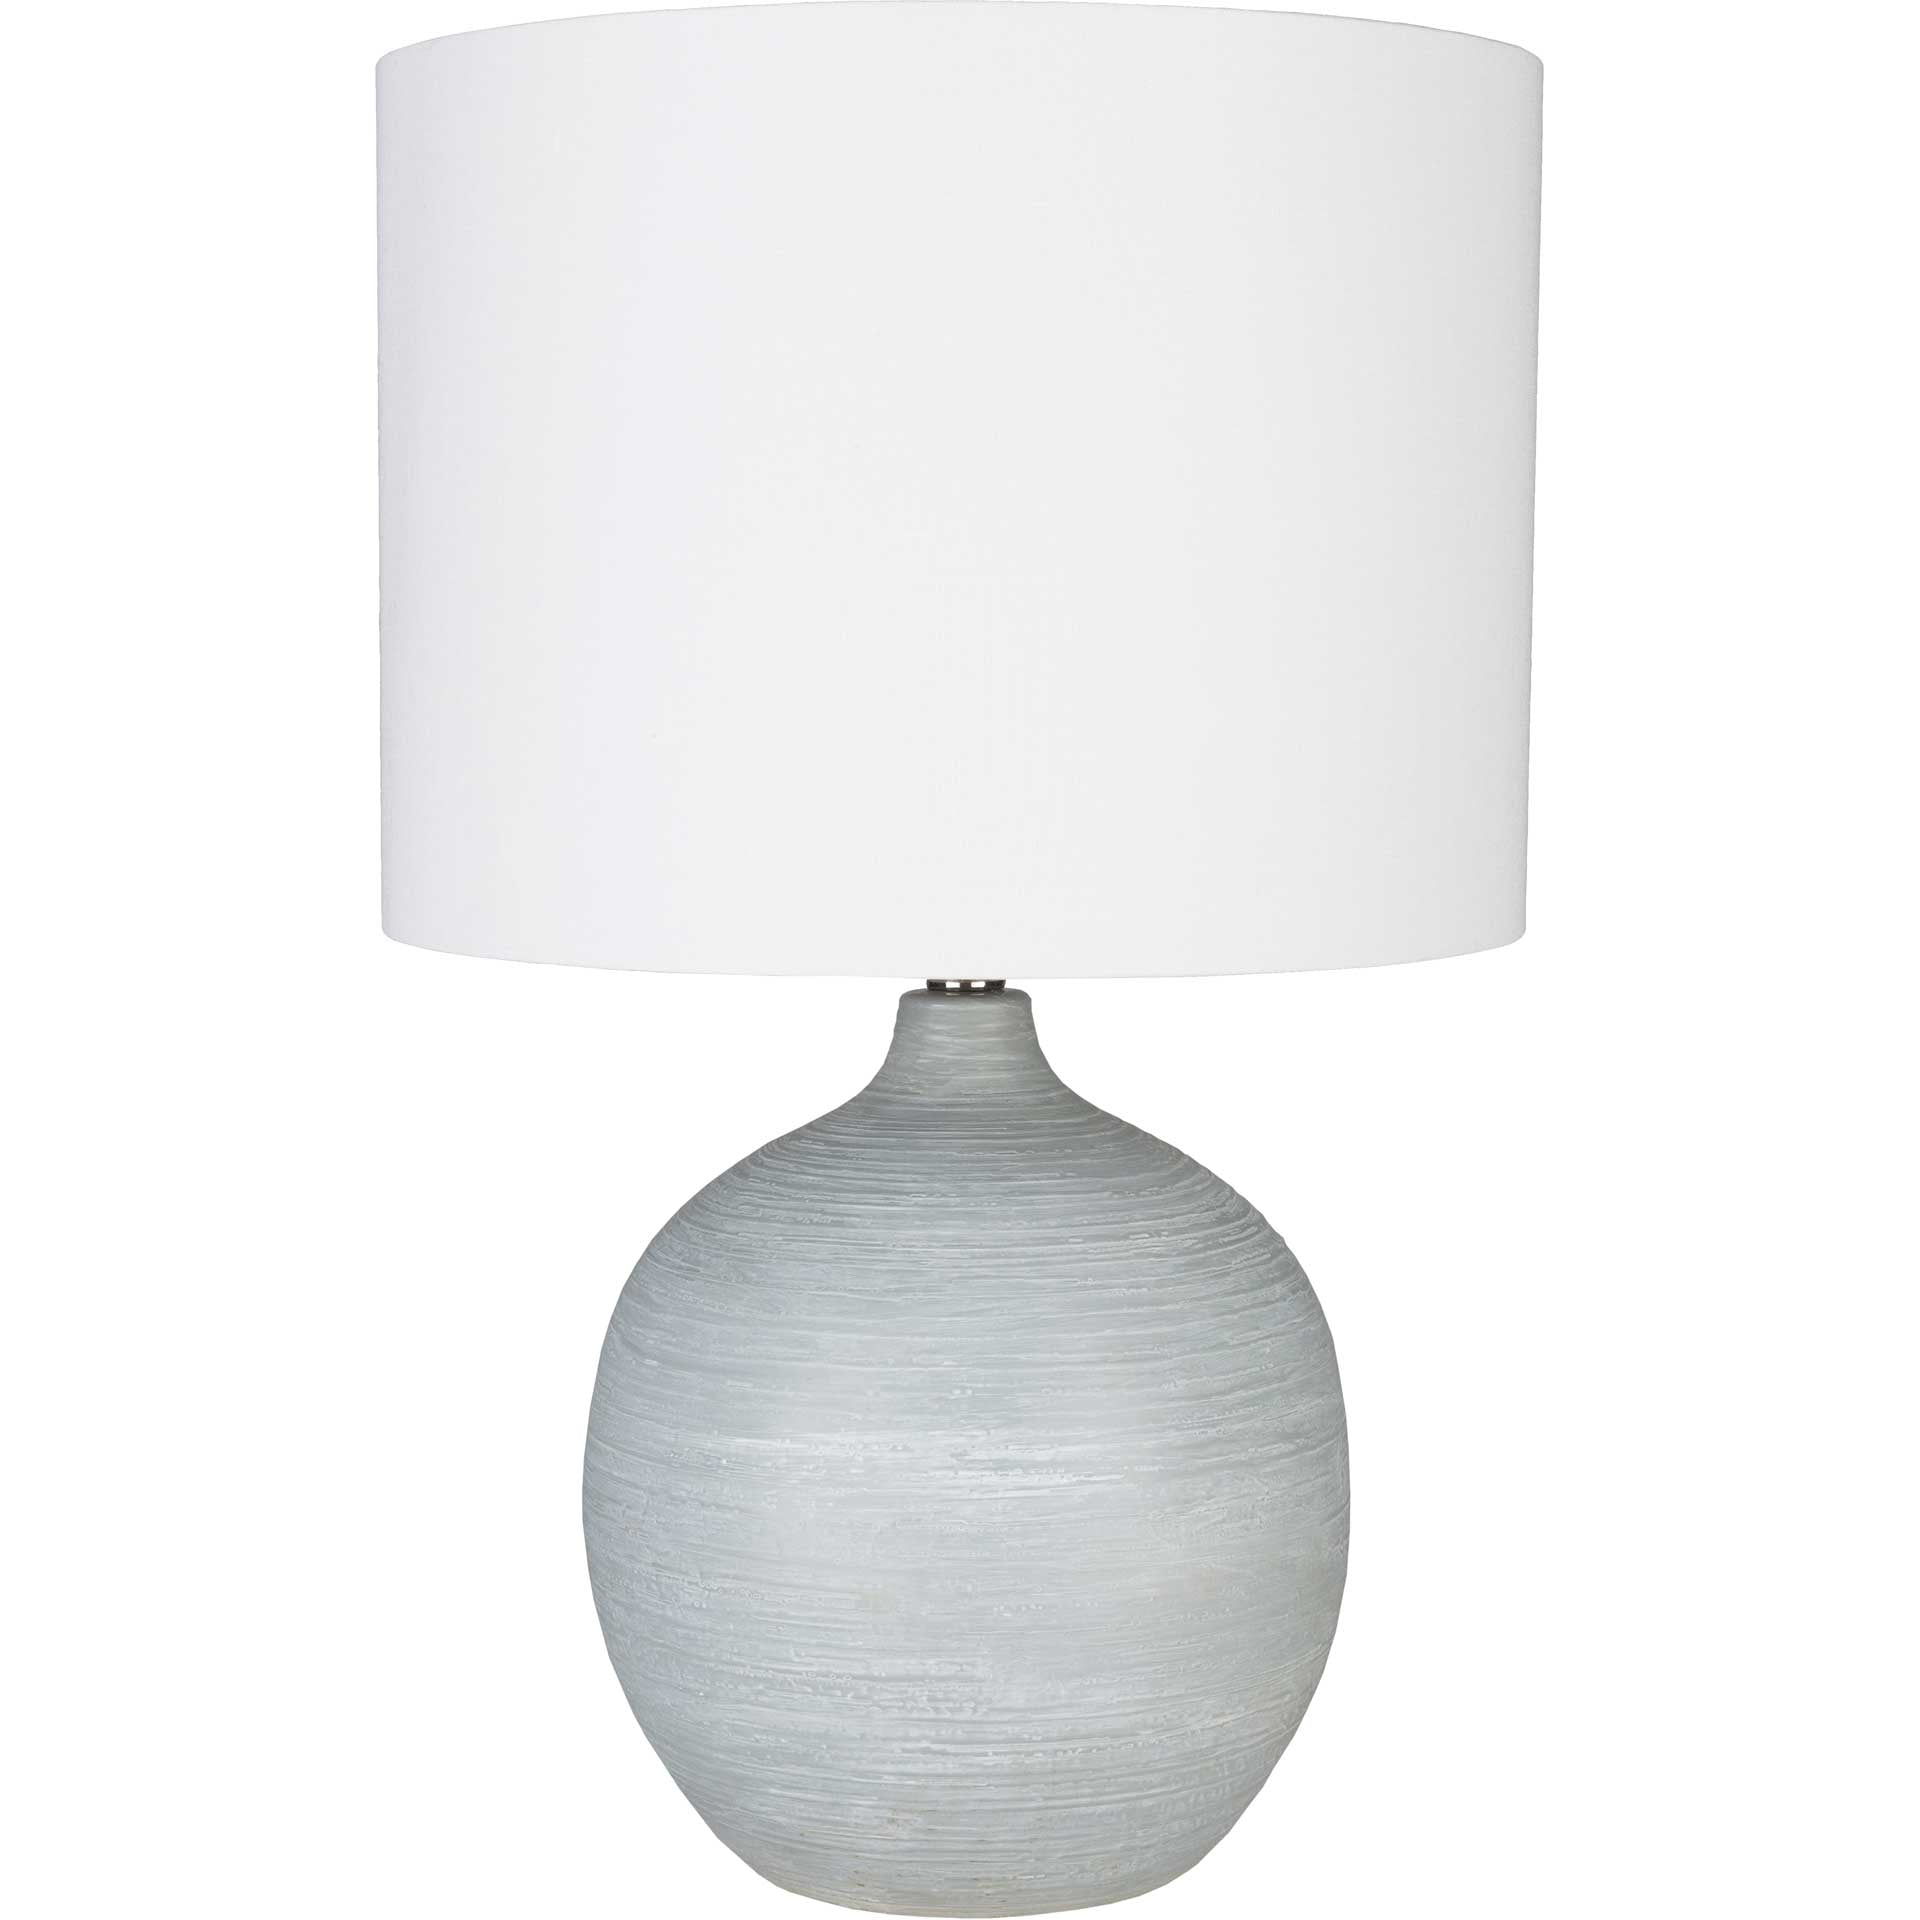 Bruno Table Lamp Light Gray/White/Gray